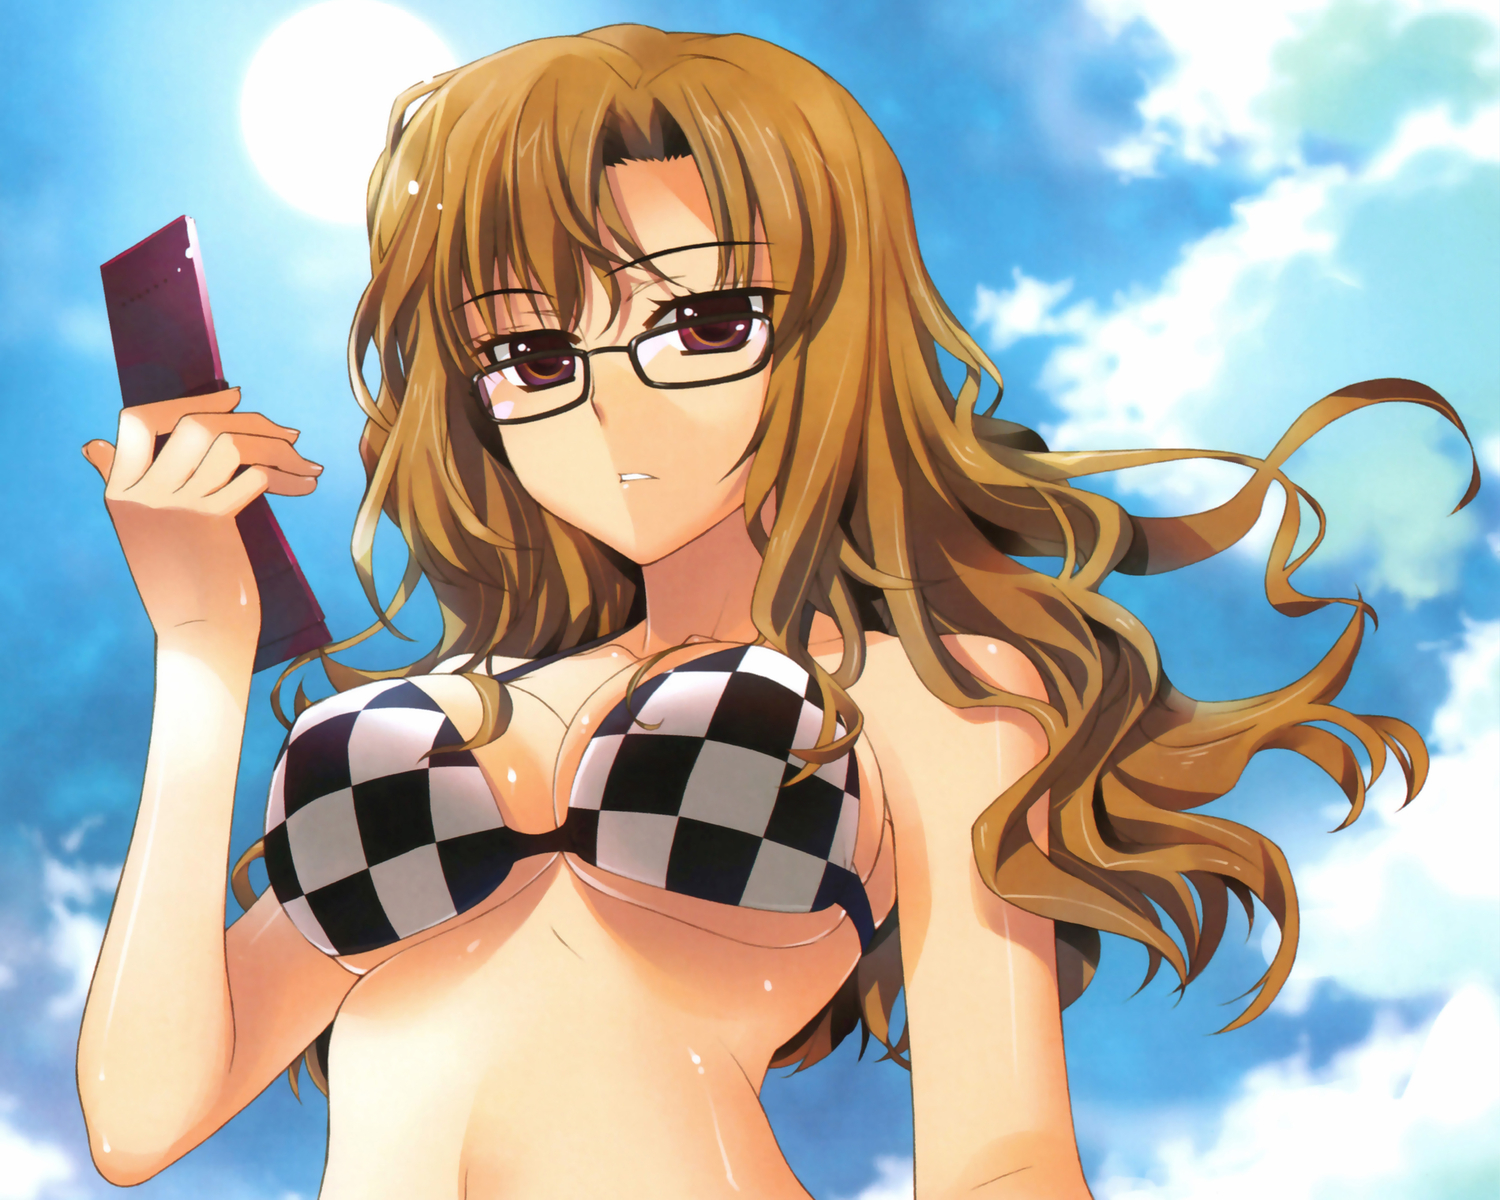 bikini_top brown_hair cleavage fujima_takuya glasses kiryuu_moeka long_hair phone sky steins;gate swimsuit underboob